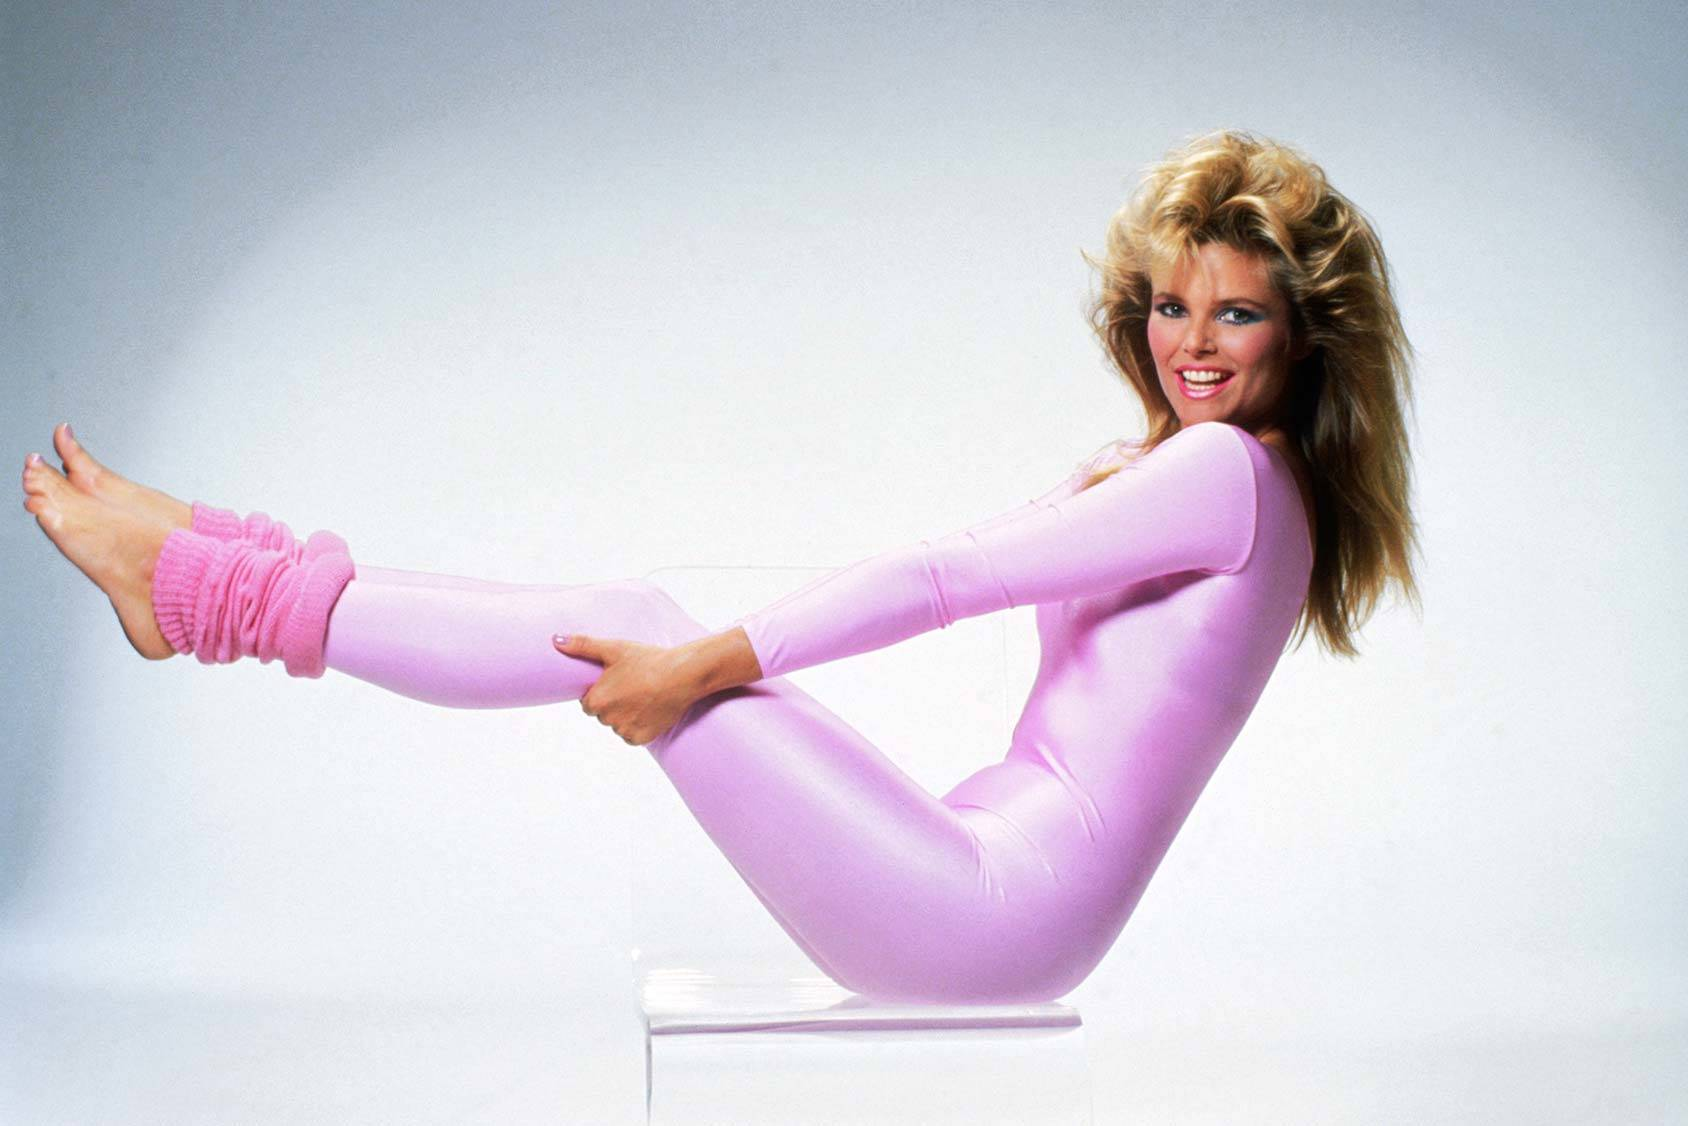 Christie Brinkley works out in pink leg warmers, All Over Press.